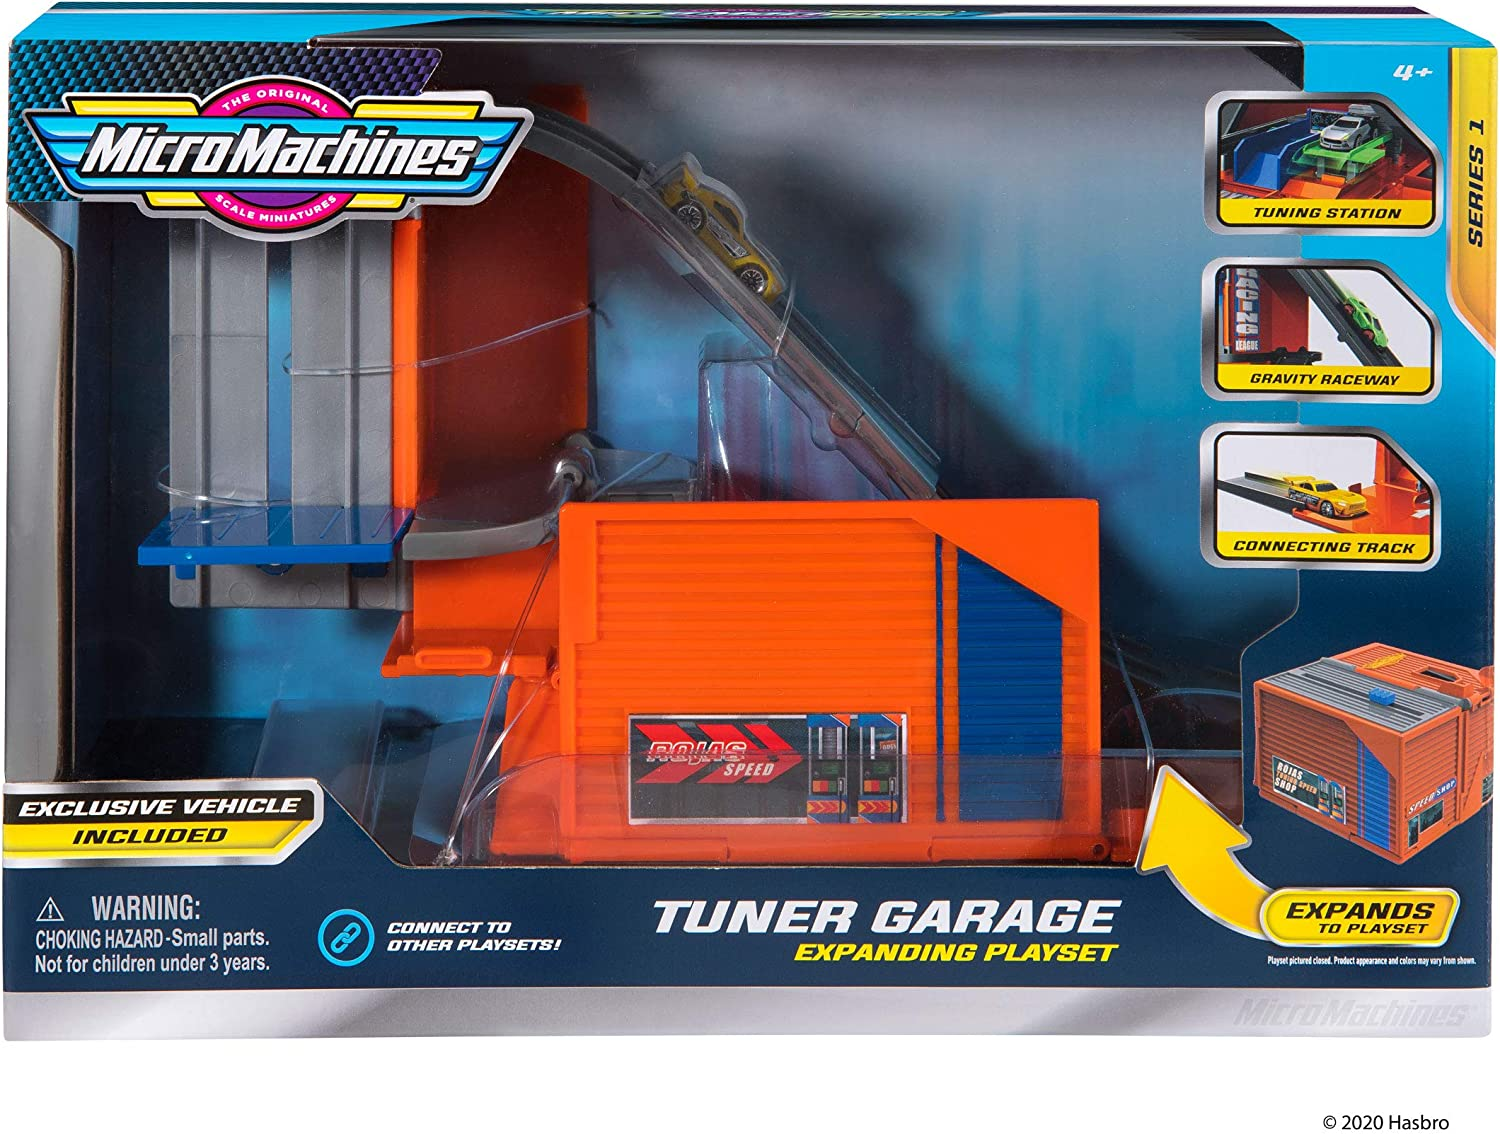 Car Tuner Garage Station Multi Collect Them All Expandable and Connectable to Other MM Sets Includes One Exclusive Vehicle Micro Machines Core Playset